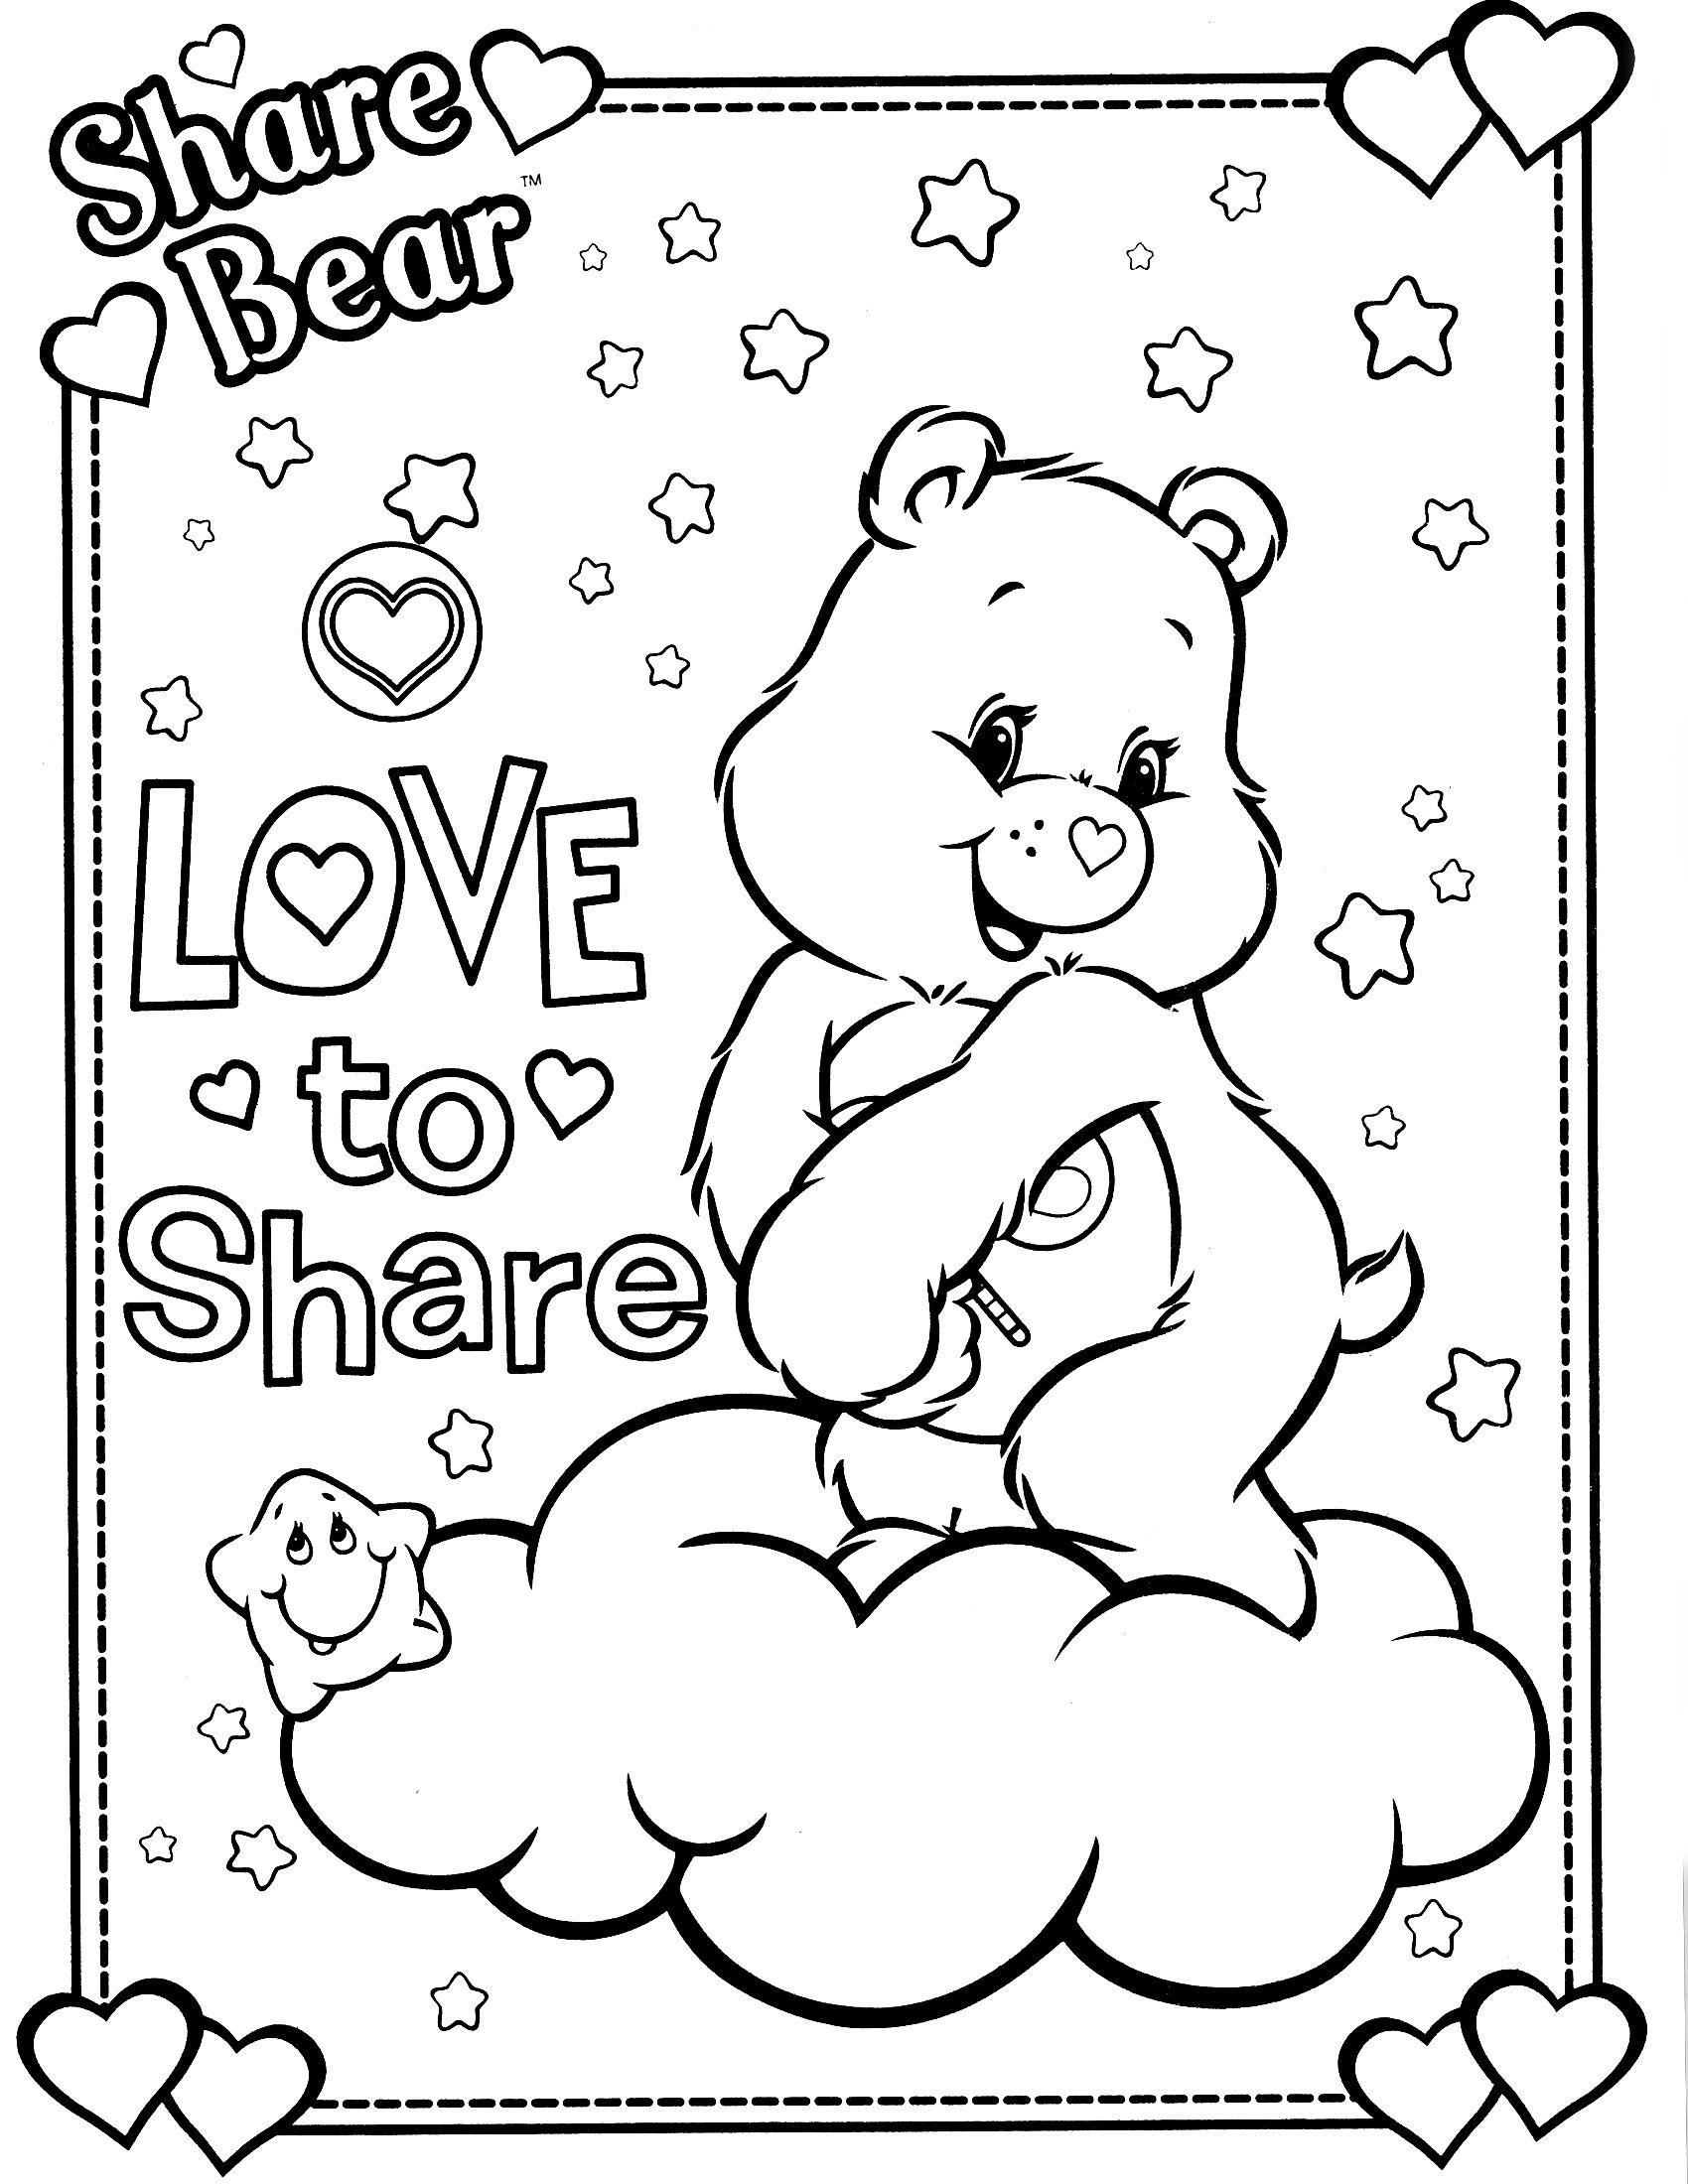 Care Bears Coloring Page Bear Coloring Pages Coloring Books Coloring Pages